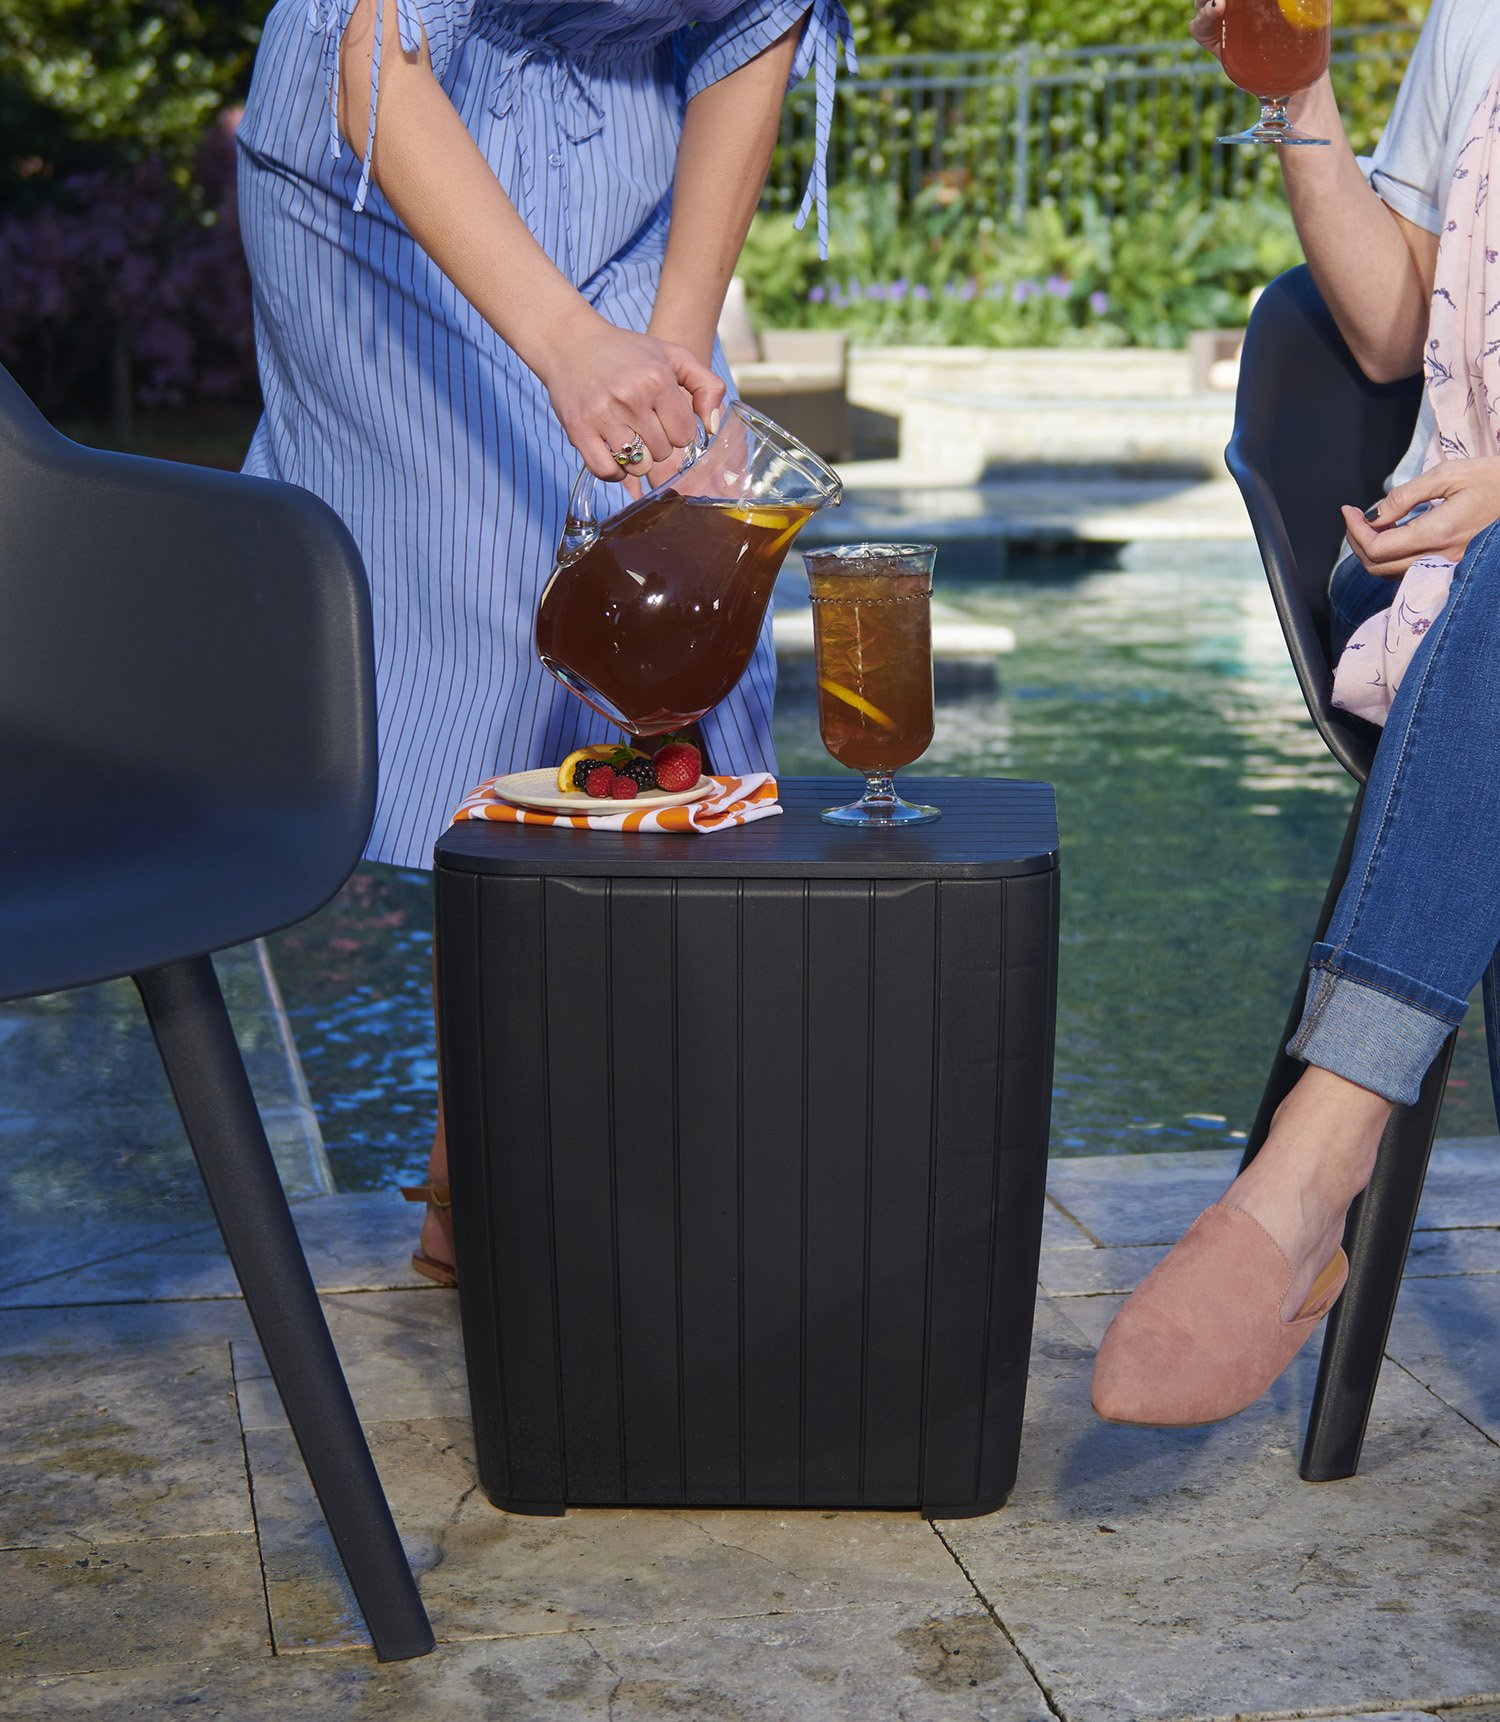 Keter Luzon Patio Side Coffee Table Outdoor Furniture Durable Resin Plastic Matte Wood Look, Graphite by Keter